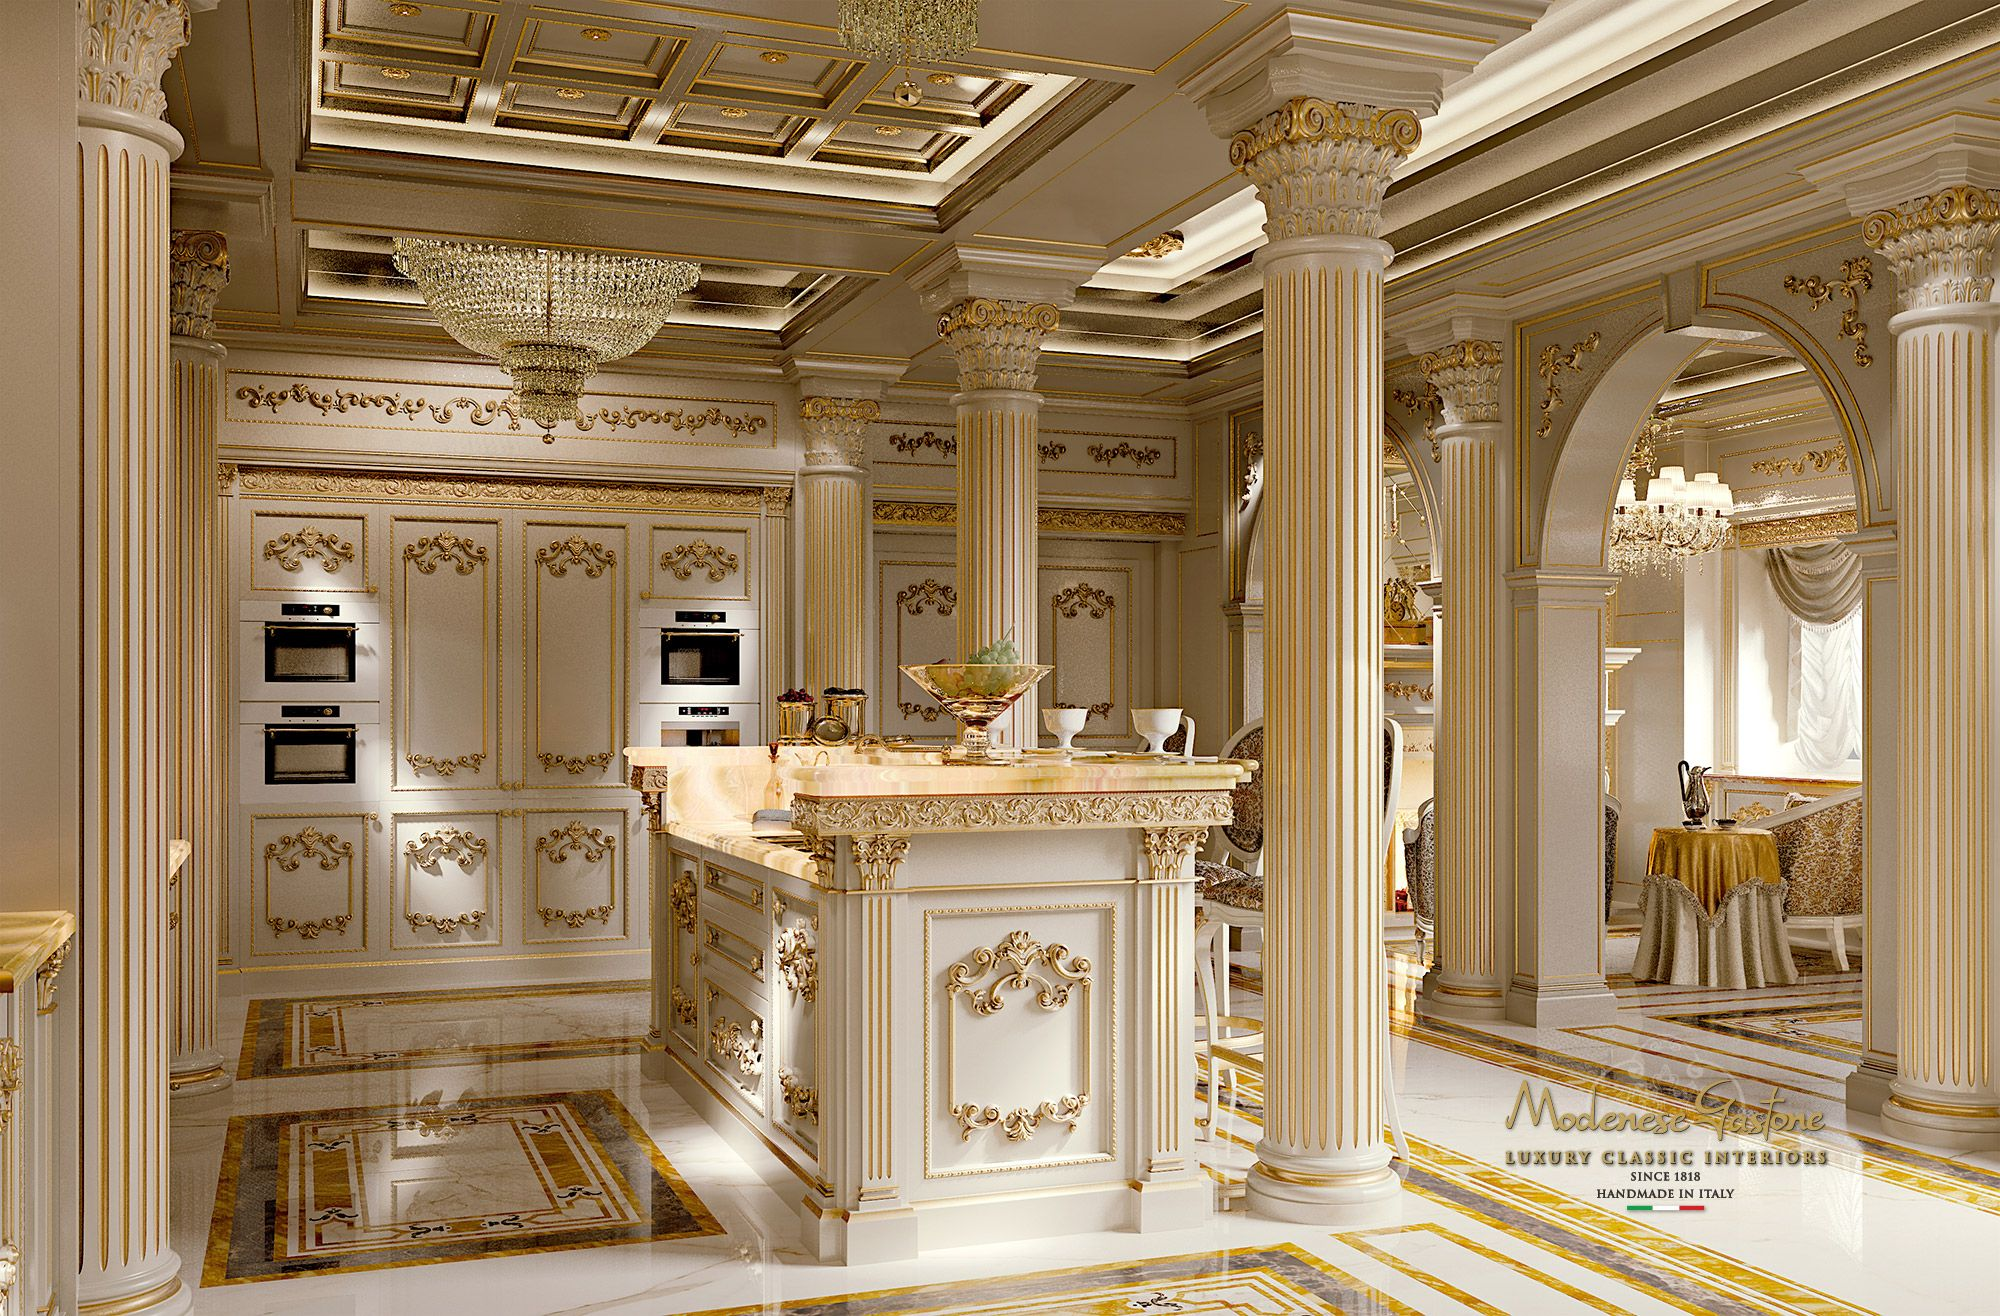 Best Whiteandgold The Kitchen Royal Modenese Gastone Http 640 x 480